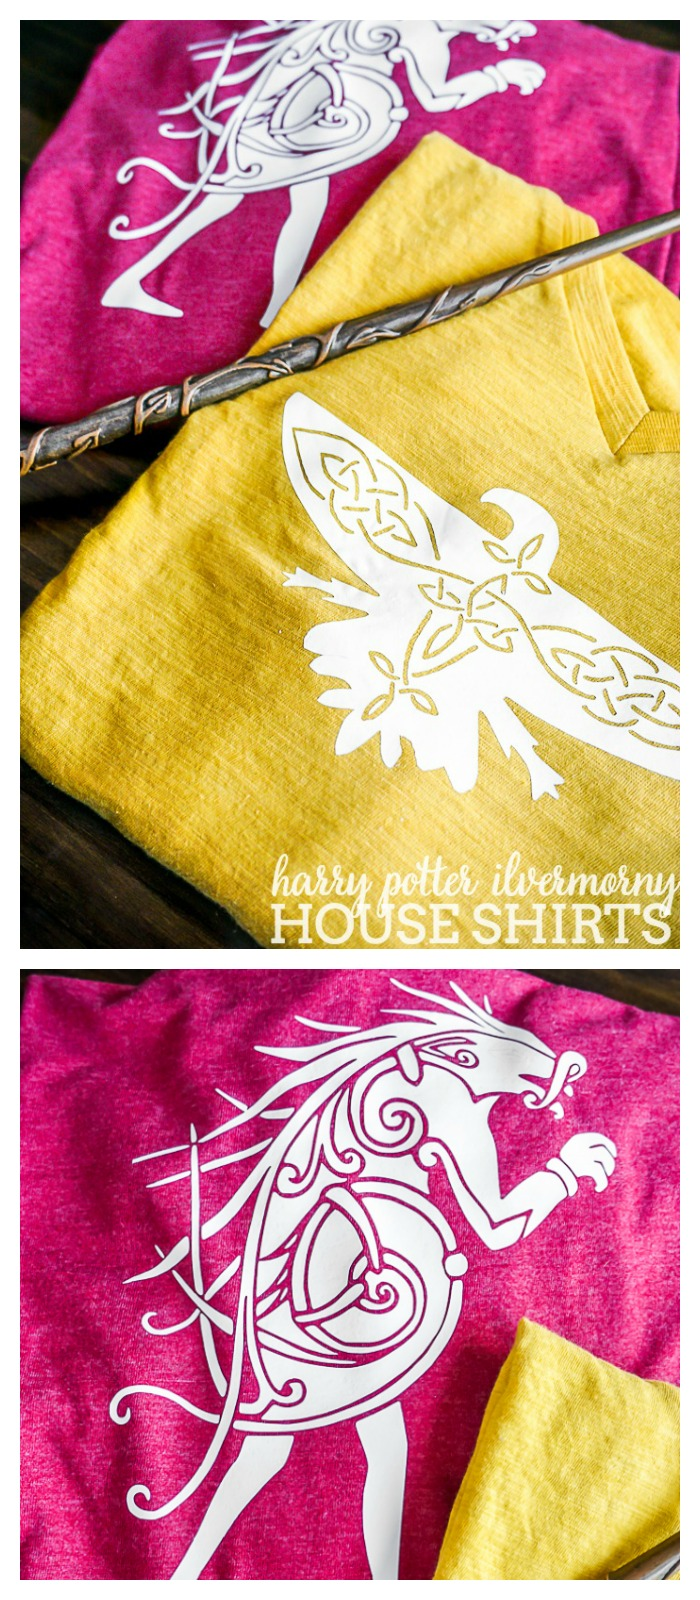 The World of Harry Potter comes to America with Fantastic Beasts and Where to Find Them so it's time to represent the new school with Ilvermorny House Shirts!   The Love Nerds